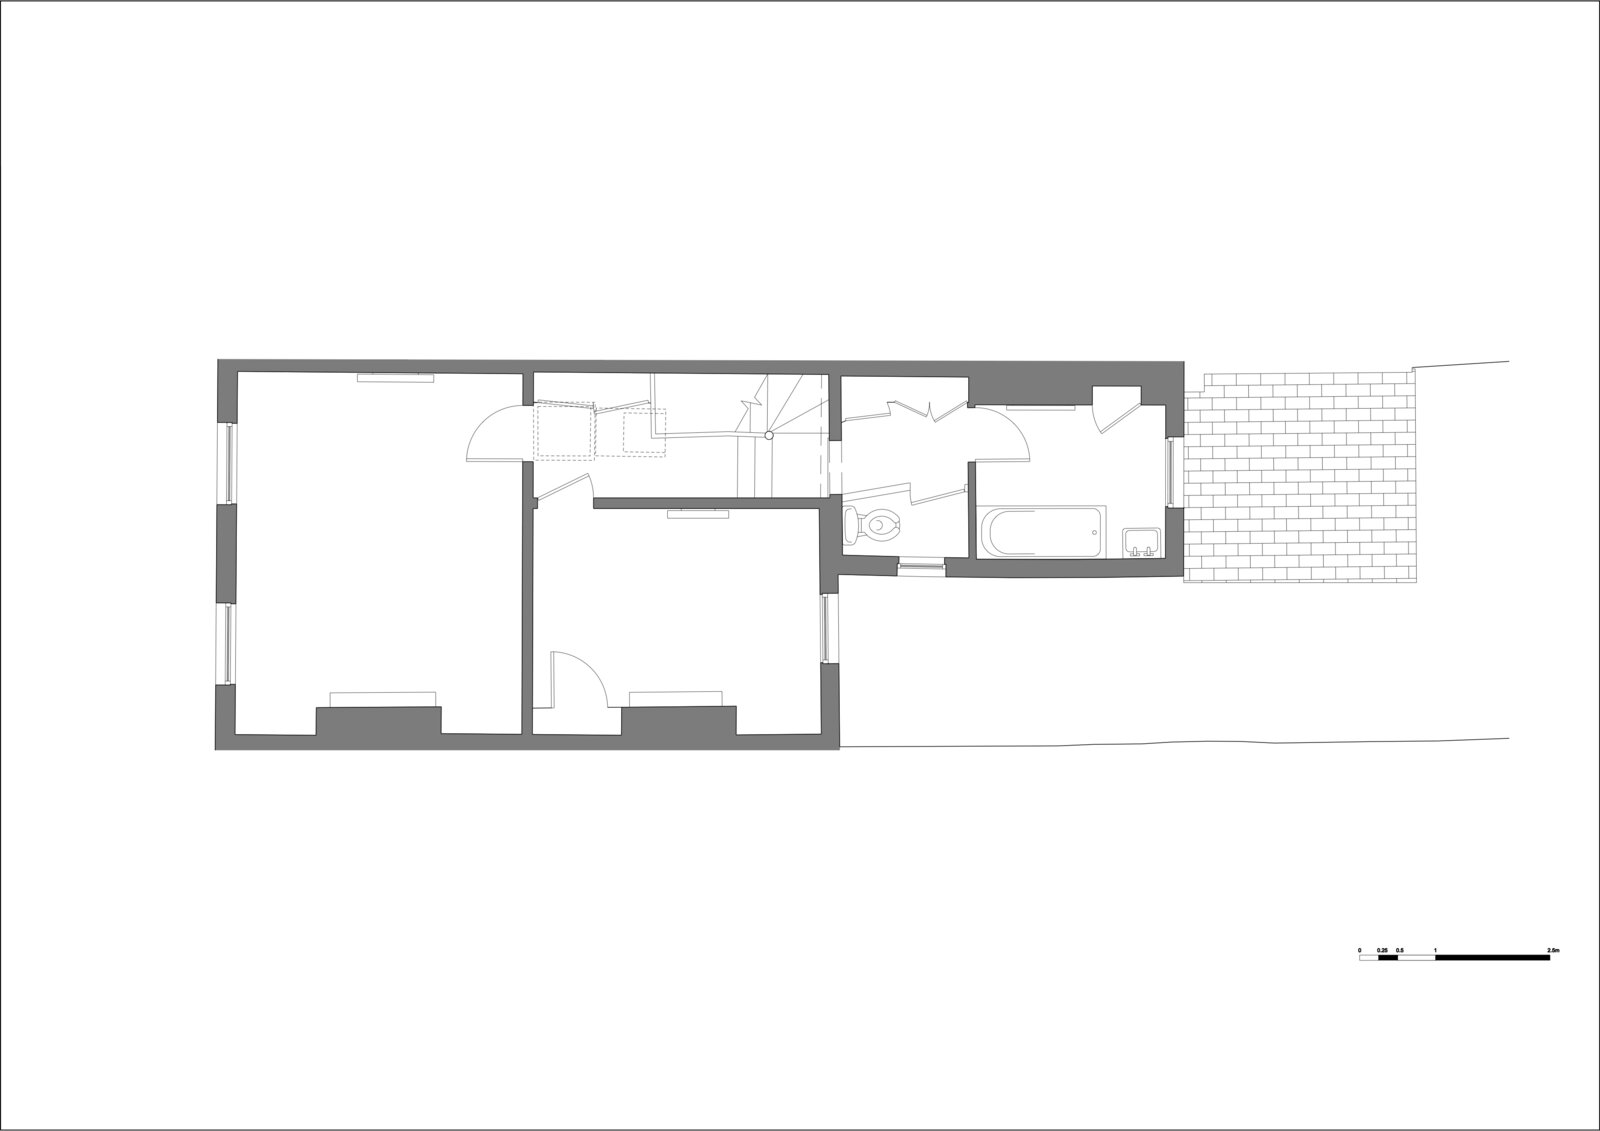 First floor plan of Zigzag Roof House by 4 S Architecture before the extension.